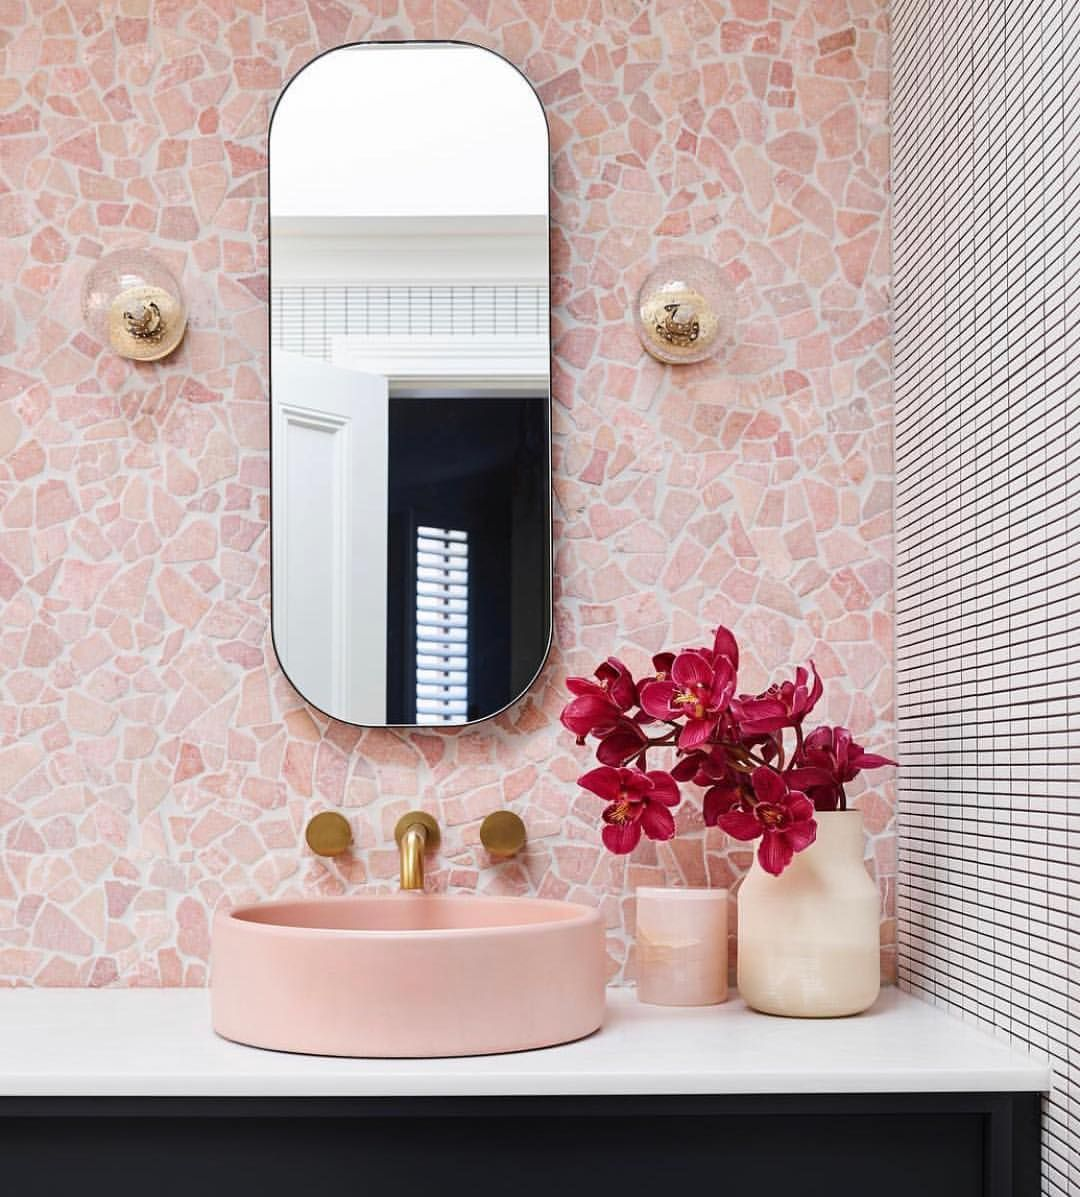 Ood Co Would Like To Thank Bellemagazineau For The Feature Of Our Bowl Sink In Blush P Idee Salle De Bain Deco Rose Poudre Decoration Interieure Salle De Bain